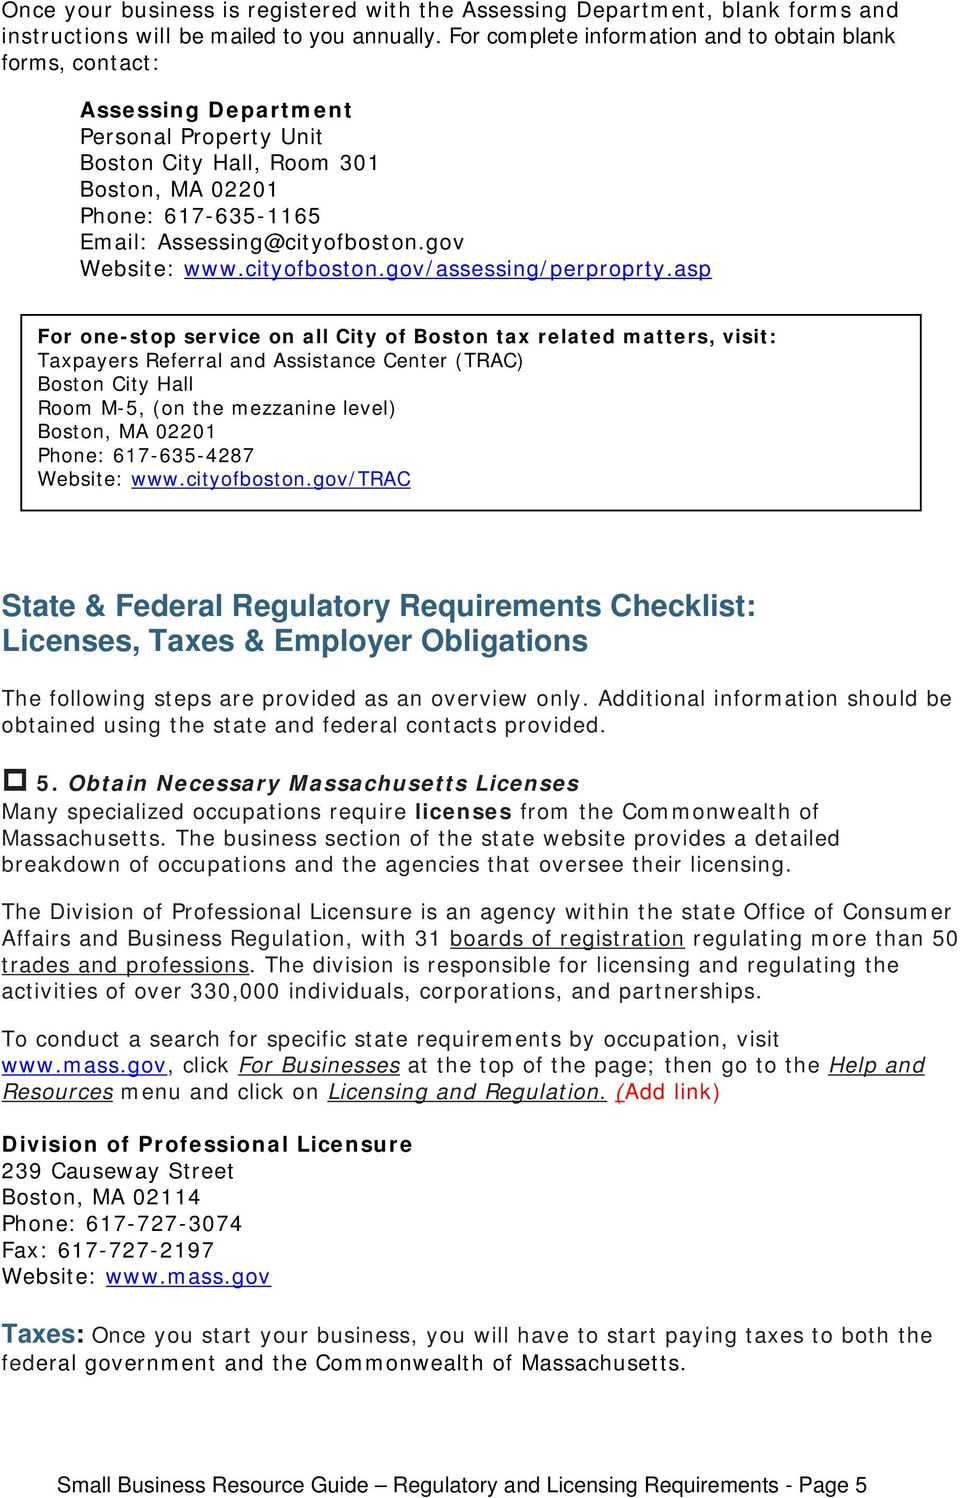 Ma Division Of Professional Licensure >> City Of Boston Regulatory Requirements Checklist Zoning Permitting